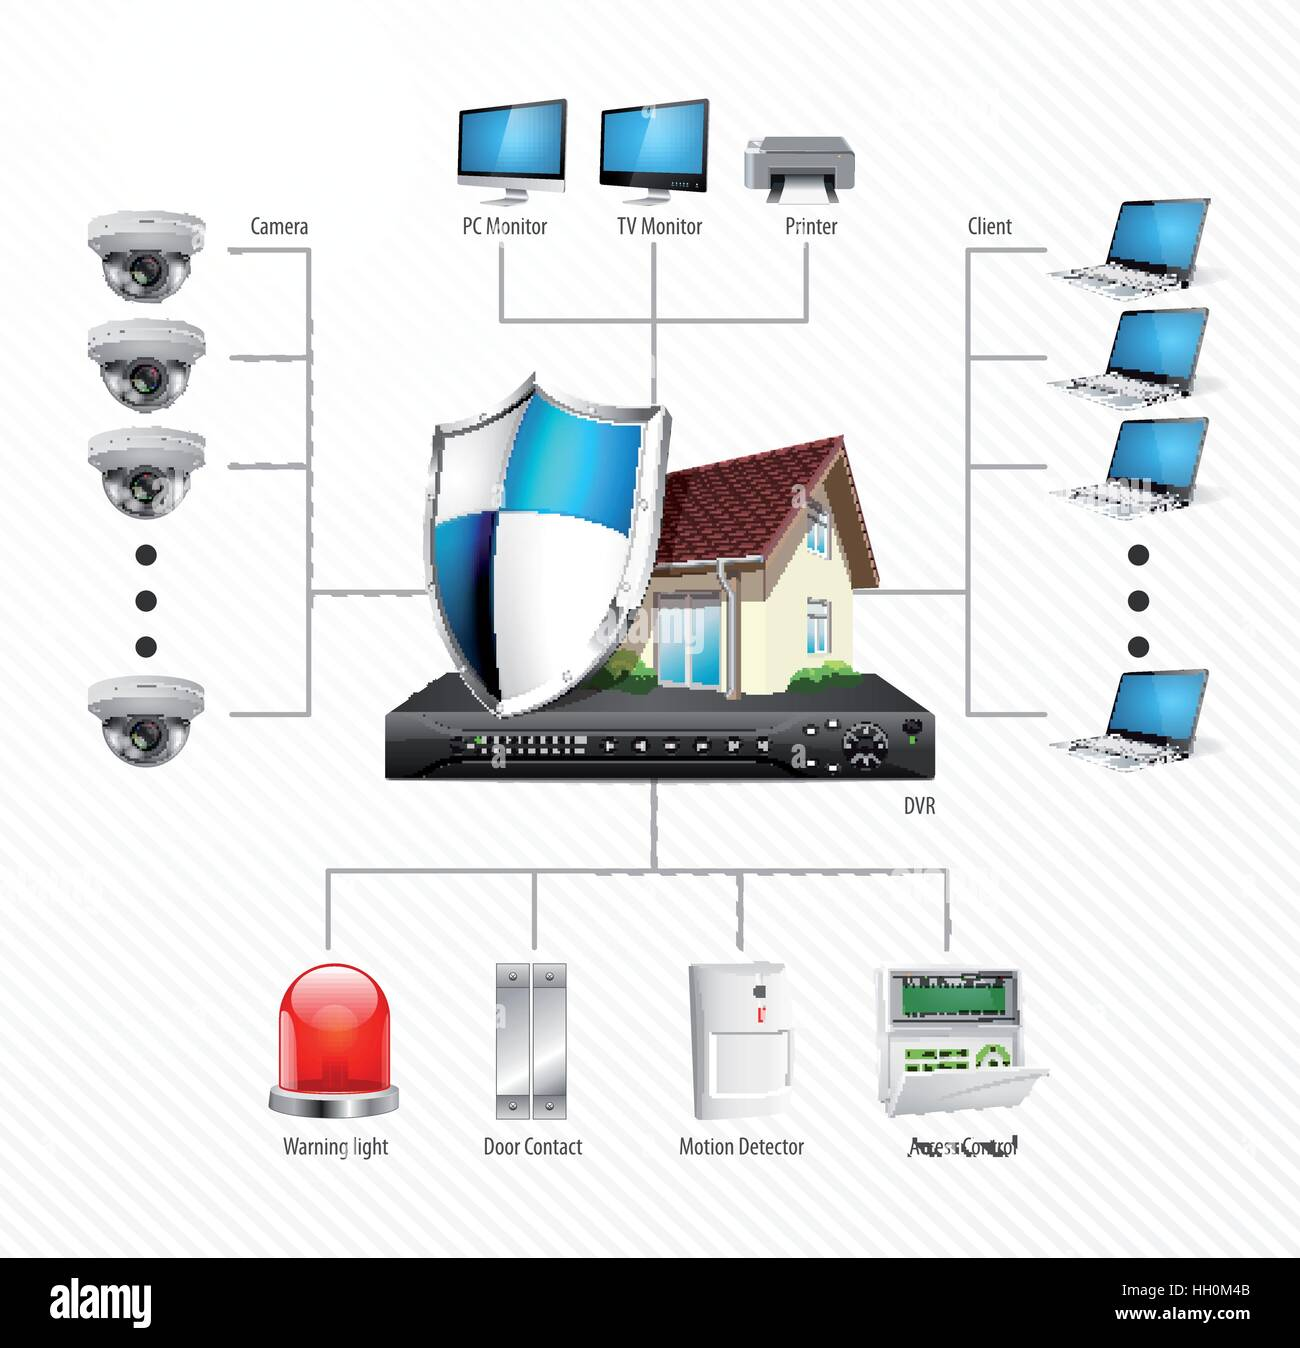 Home Security System Concept   Motion Detector, Gas Sensor, Cctv Camera,  Alarm Siren